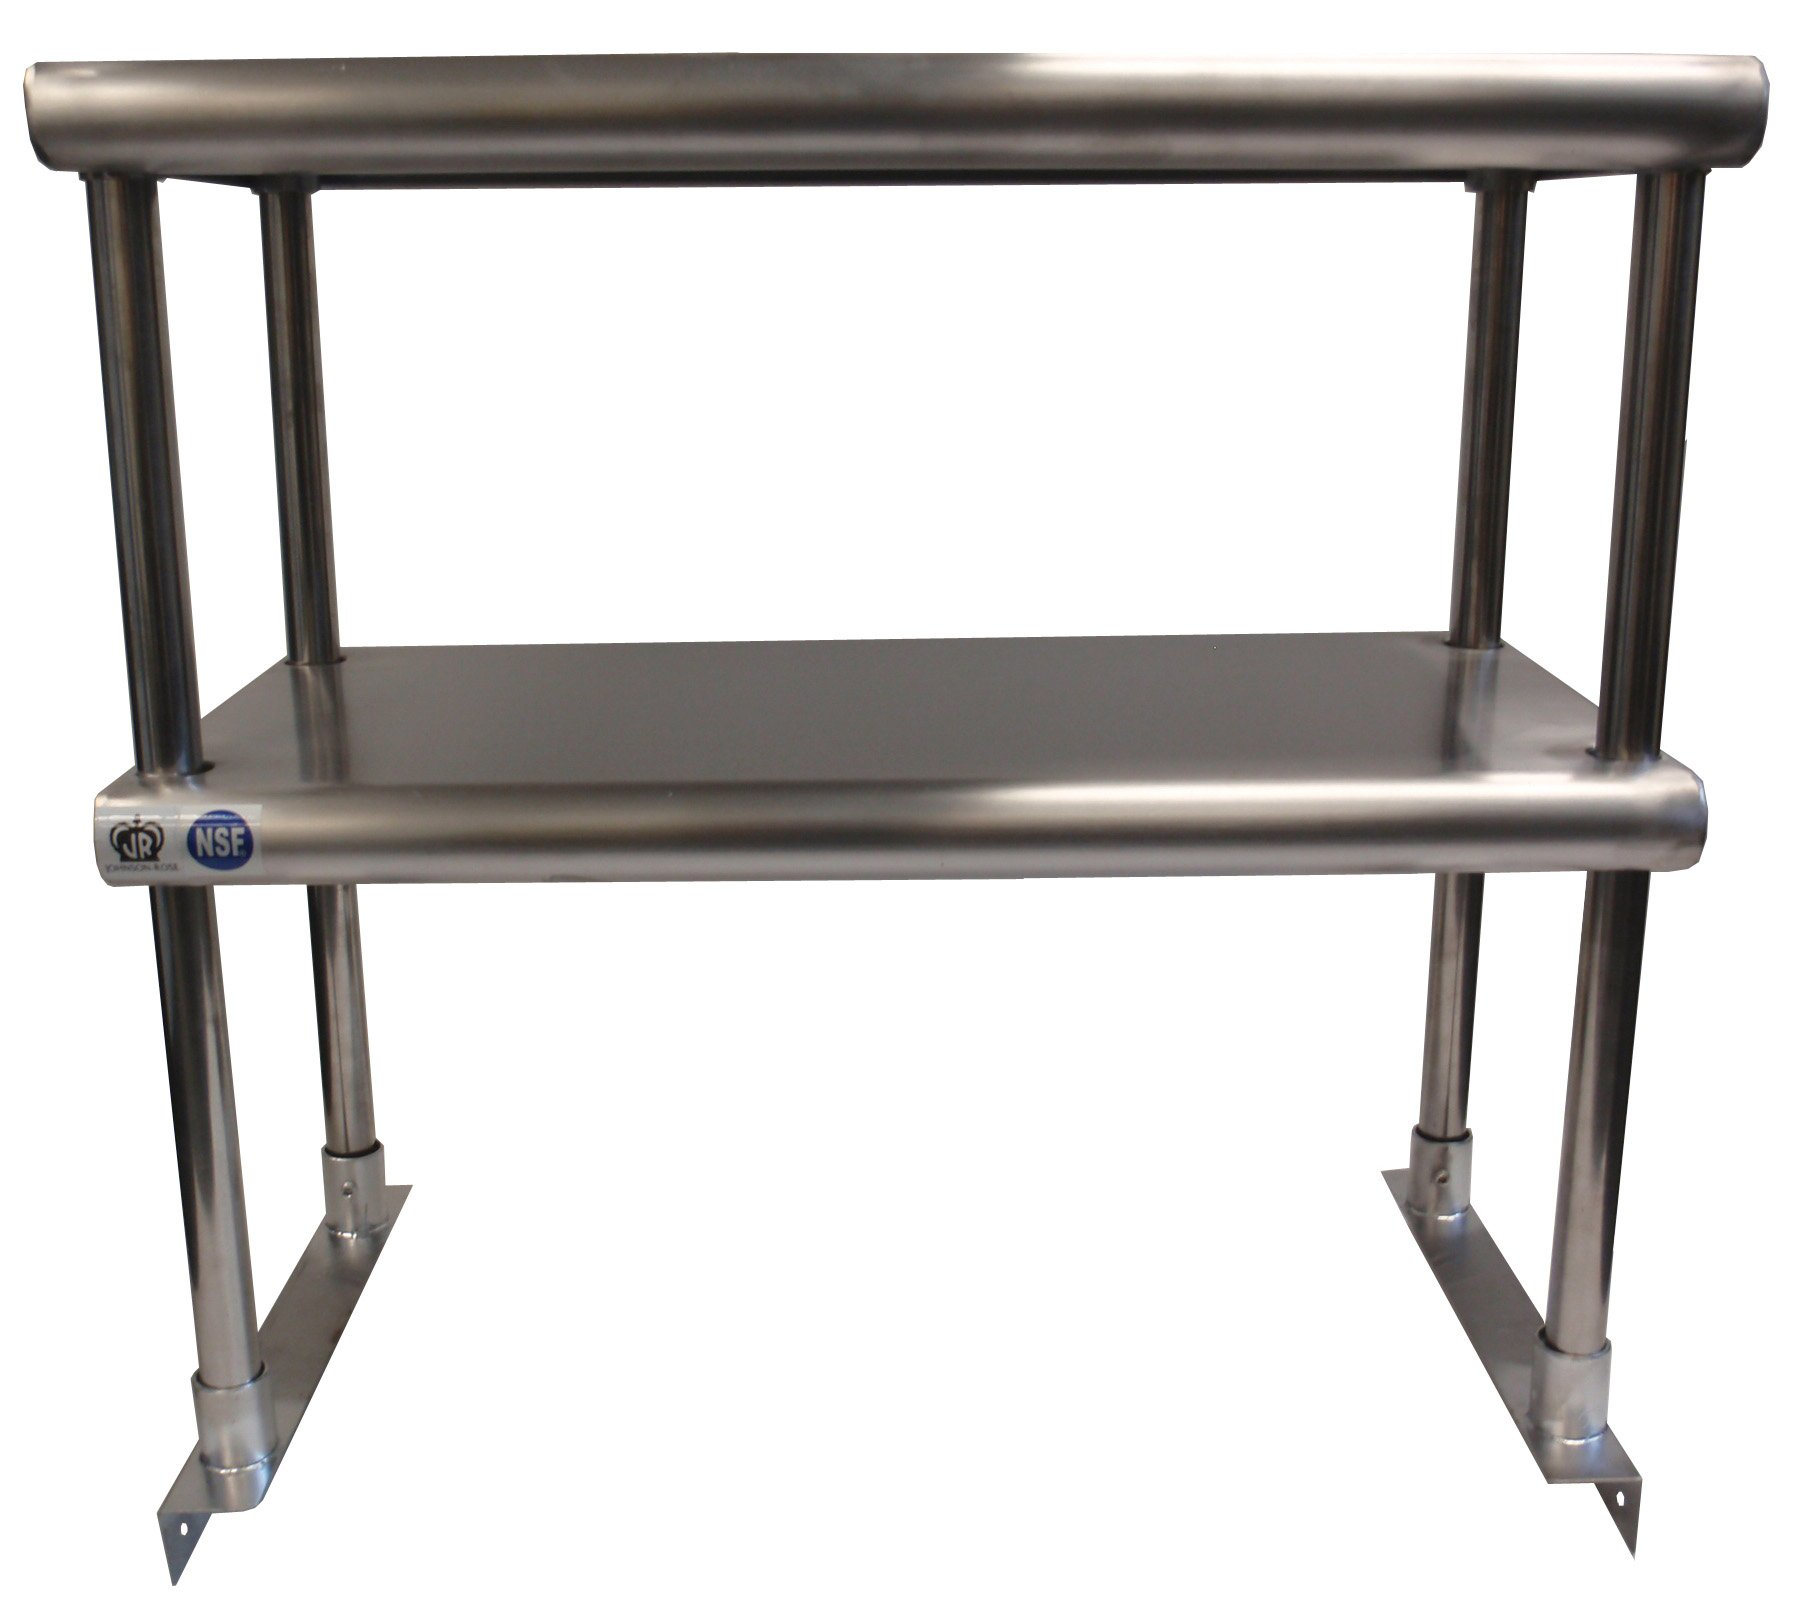 Johnson Rose 81298 Over Shelf for Work Table, Double Tier, 12'' x 96'', #430 Stainless Steel, 18 Gauge Top Stainless Steel Legs and Socket Easily Attaches to Work Tables